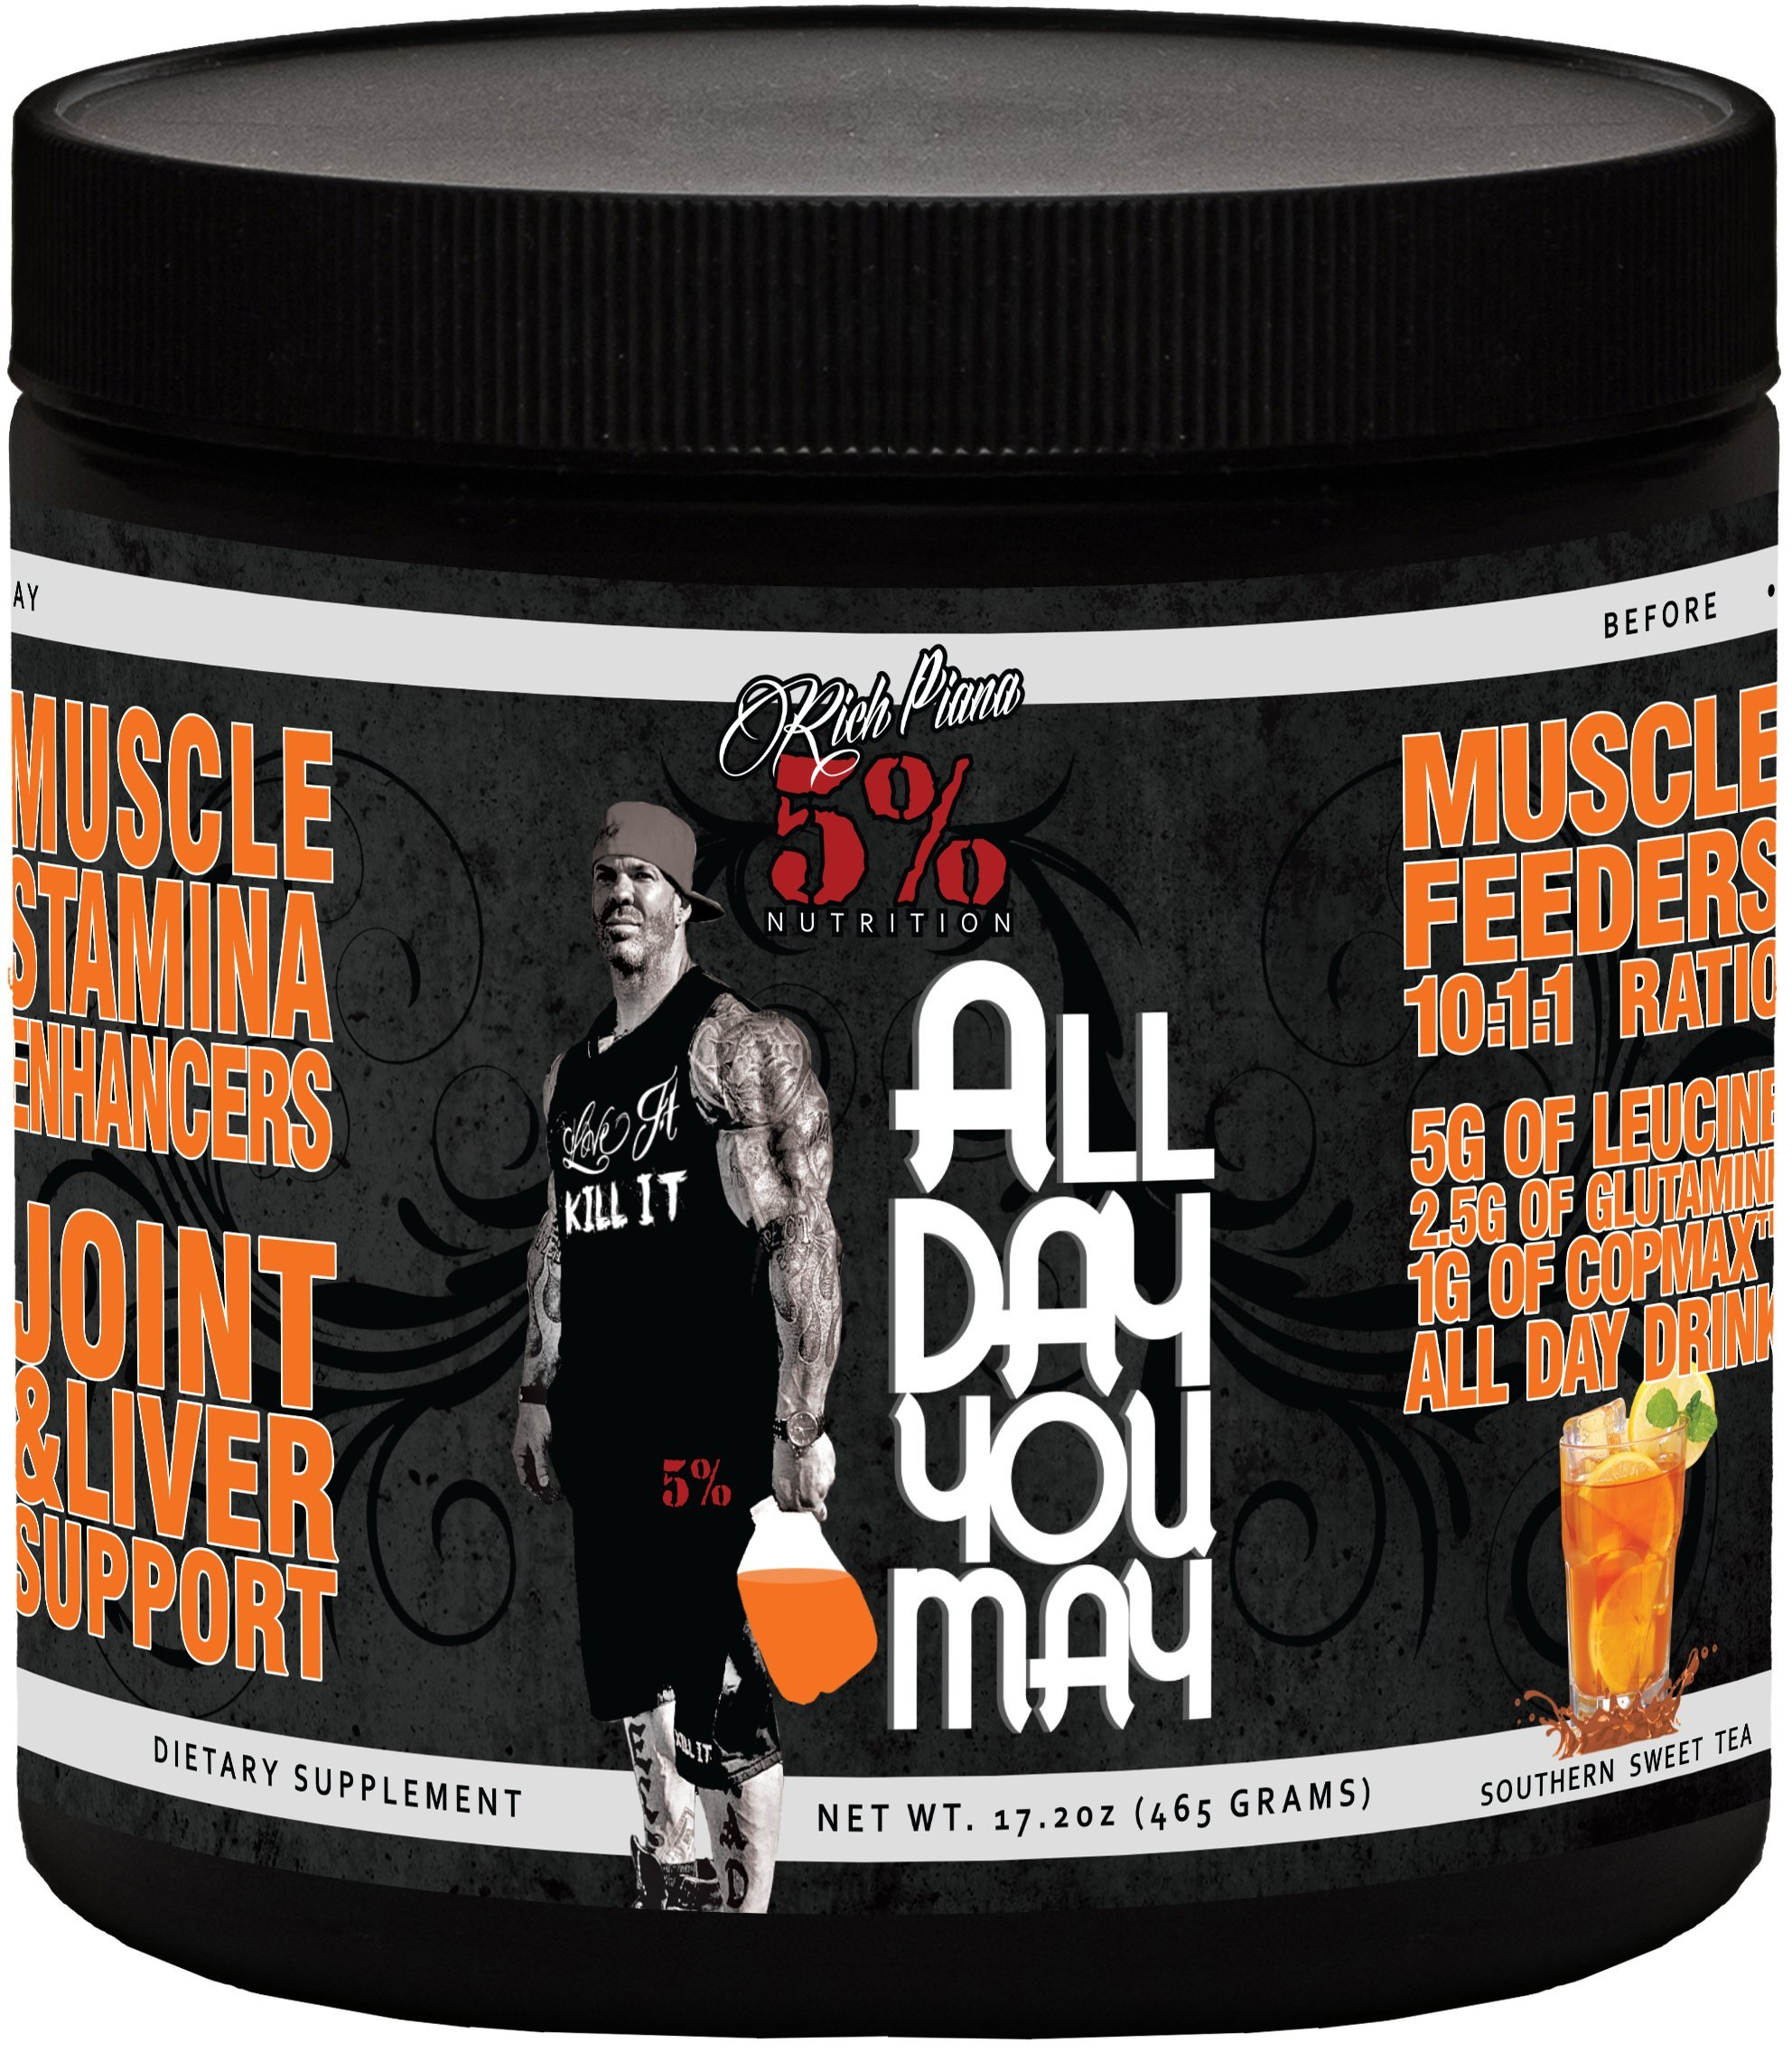 Rich Piana 5% Nutrition All Day You May BCAA & Joint Recovery Drink (Southern Sweet Tea) 17.2oz (465 Grams) 30 Servings